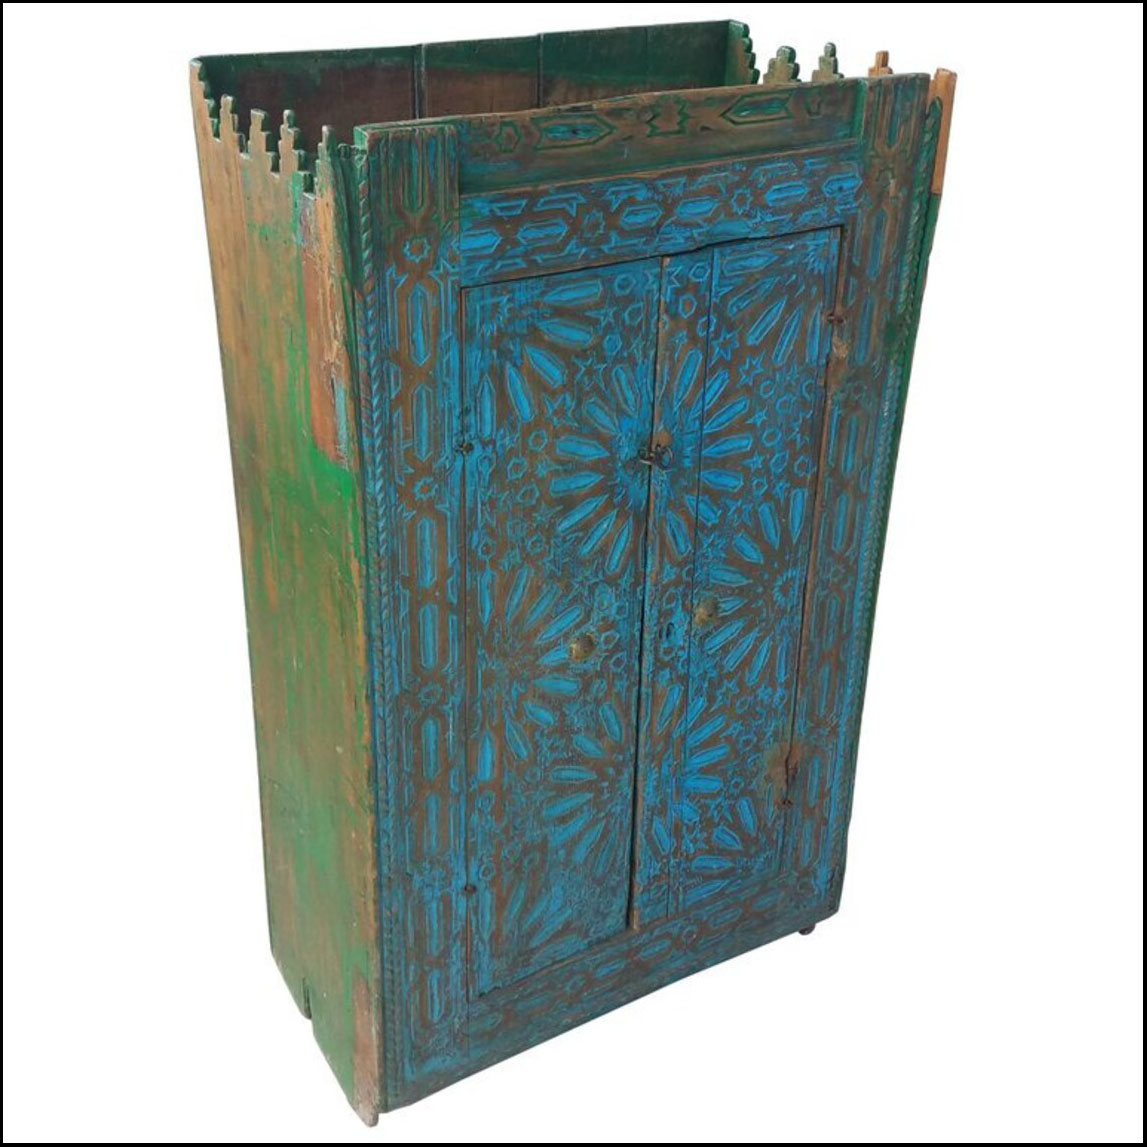 Very Old Moroccan Wooden Cabinet, Turquoise